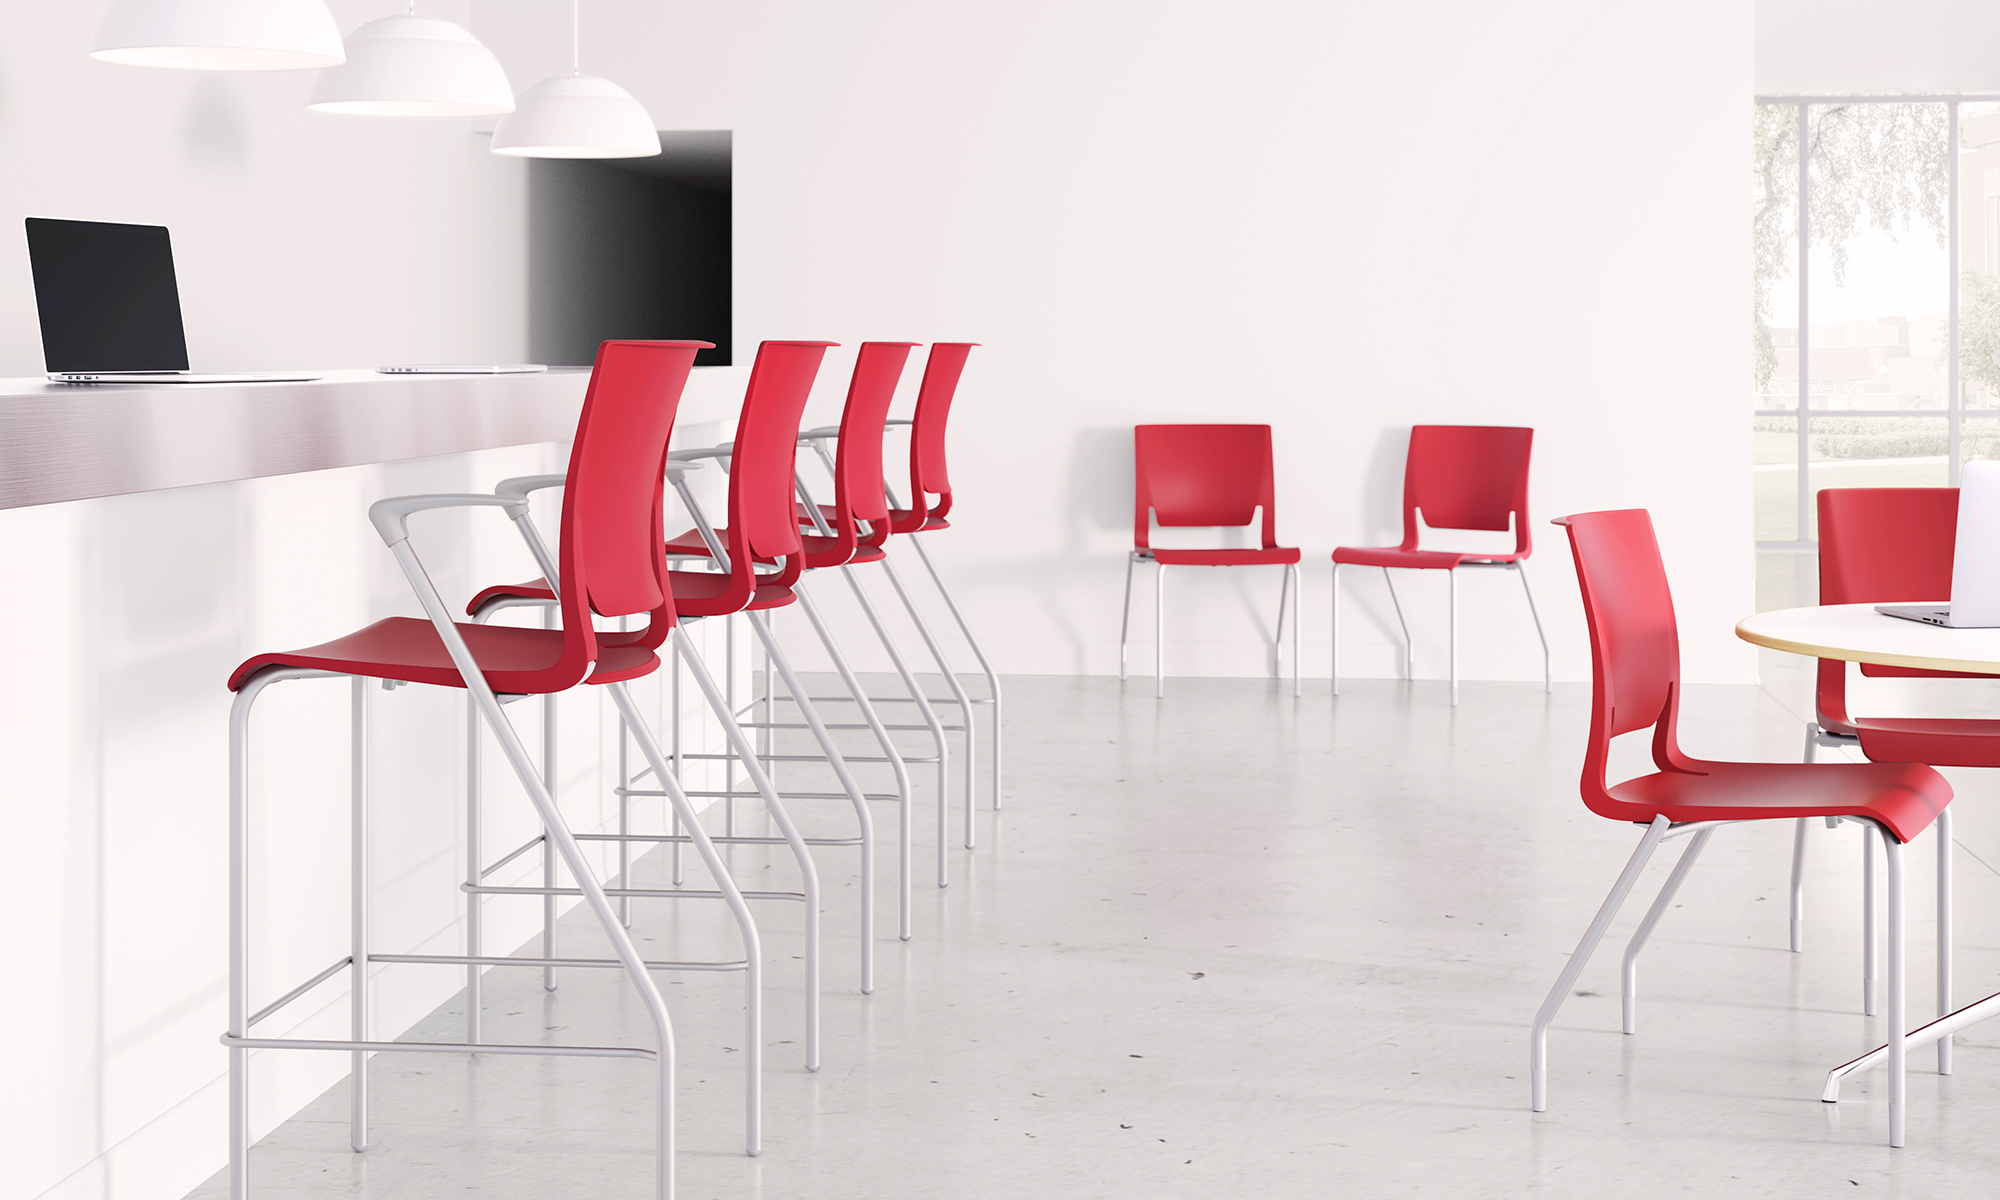 rio_stool_multipurpose_red_shell_corporate_breakroom_environment